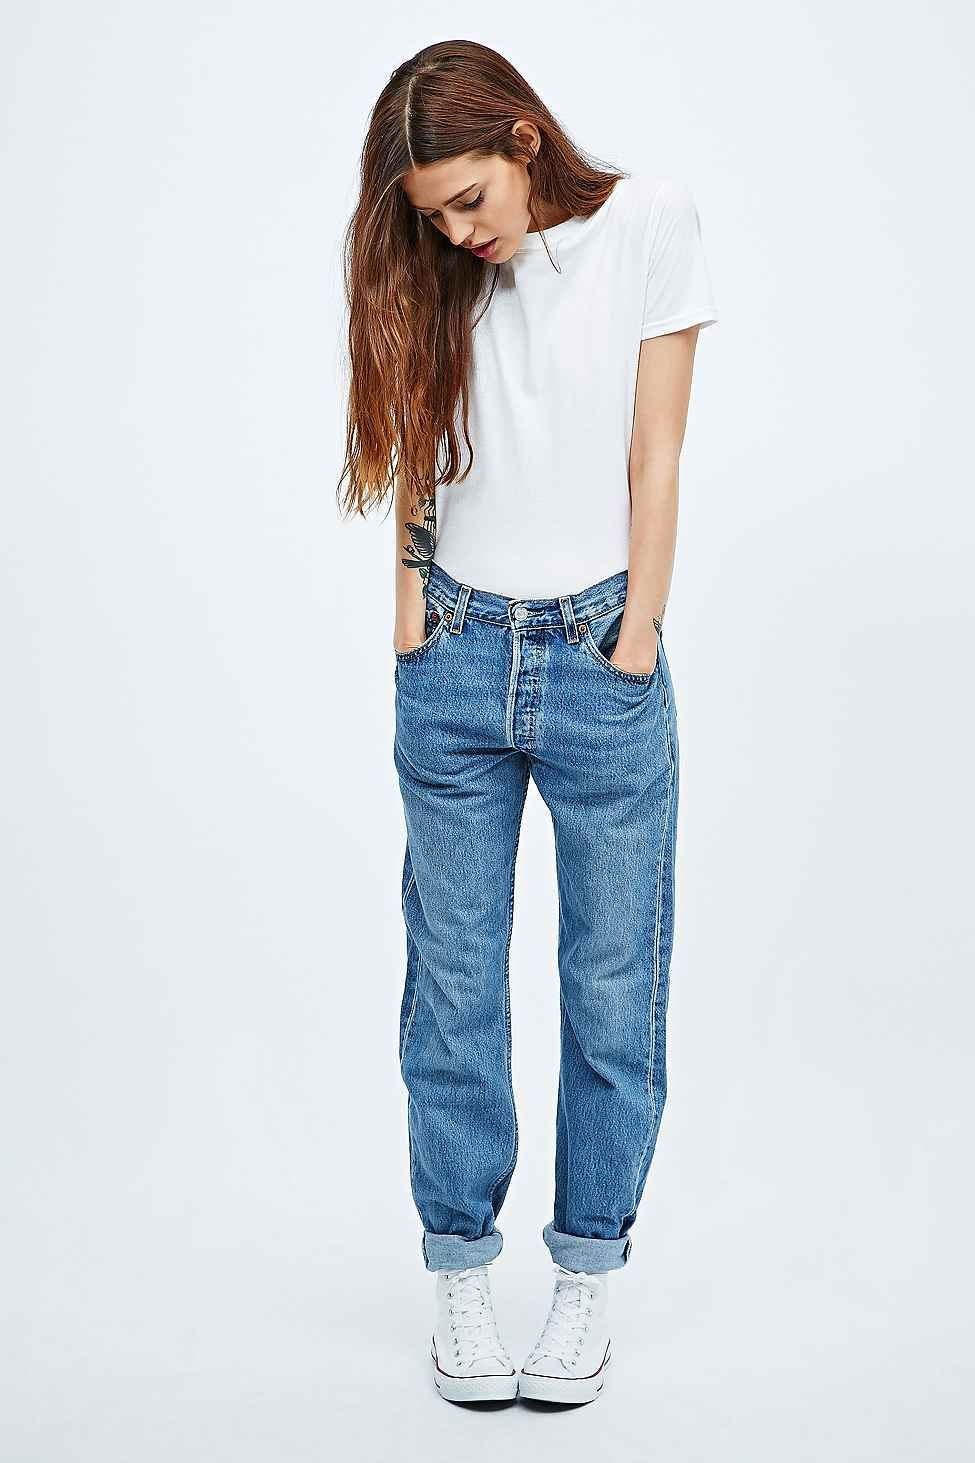 d154b32c Urban Renewal Vintage Customised Mid Wash Levi's 501 Jeans (This is just an  example, i'd like some cool jeans or some high waisters). denim Levis Shop  ...